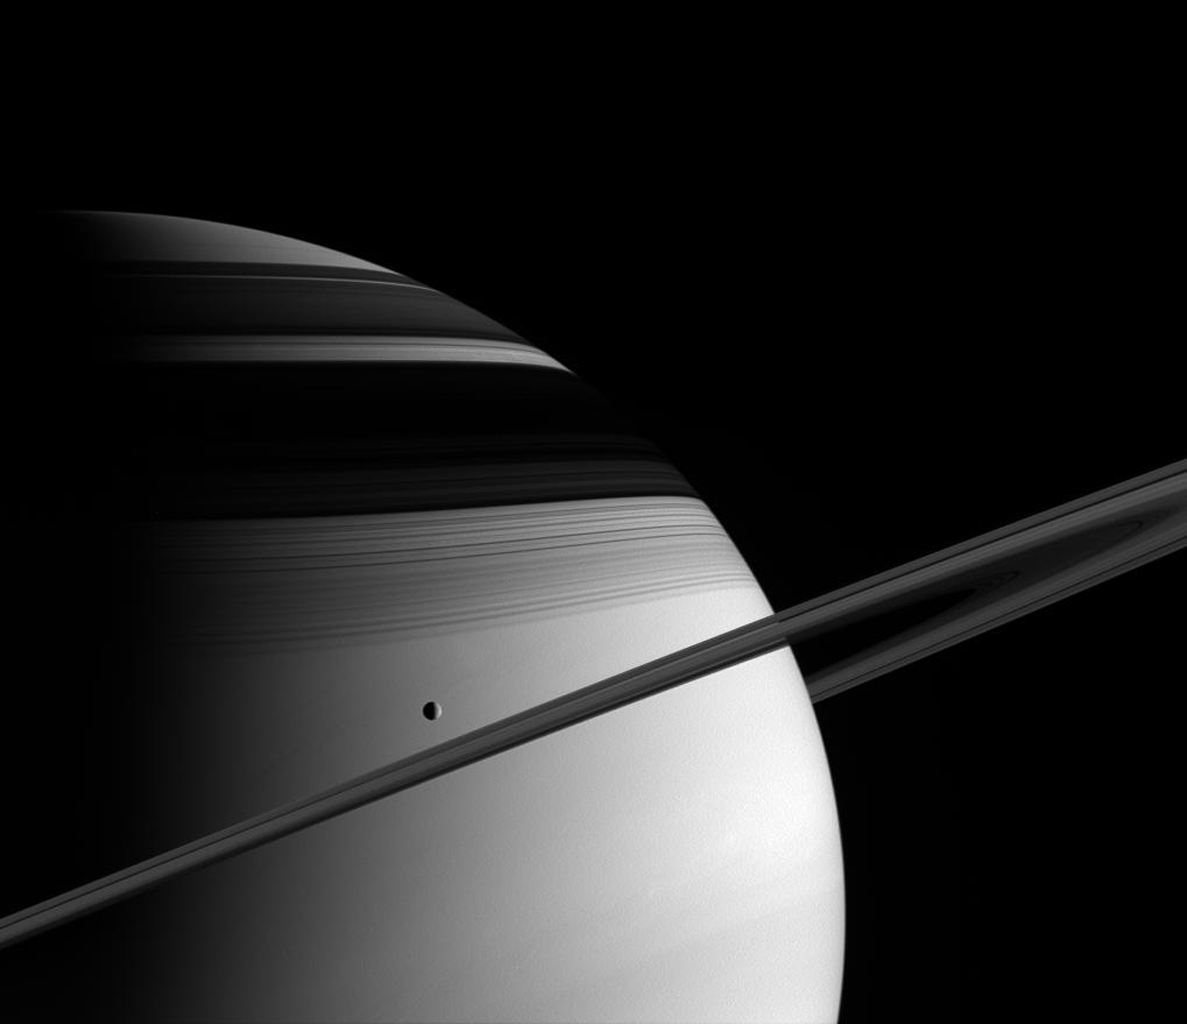 The majesty of Saturn overwhelms in this image from NASA's Cassini spacecraft. Saturn's moon Tethys glides past in its orbit, and the icy rings mask the frigid northern latitudes with their shadows.